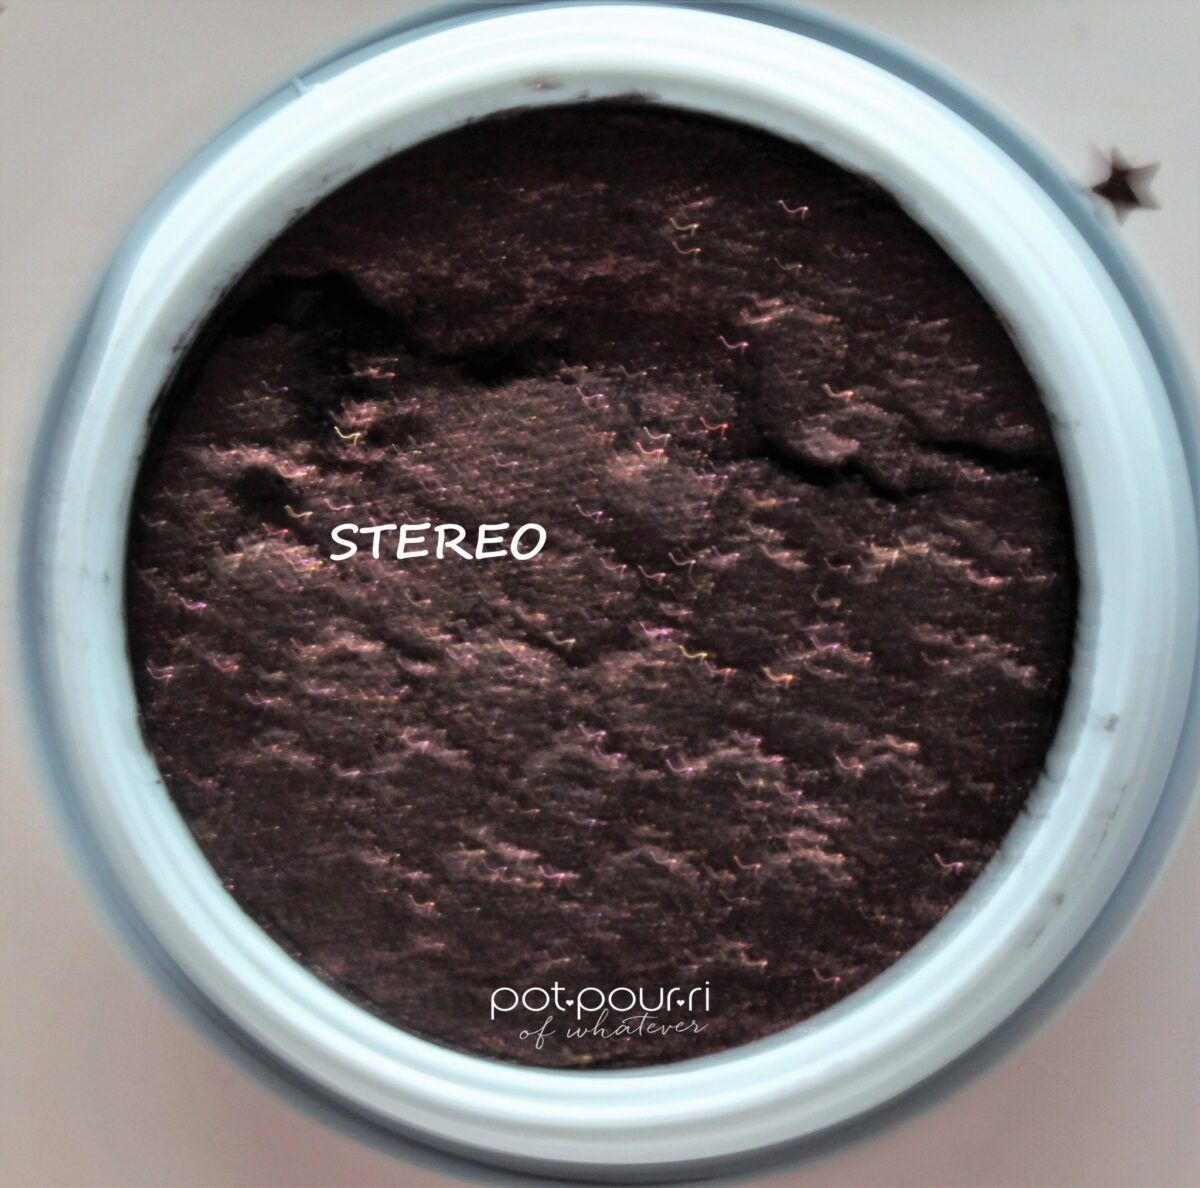 Colourpop-stereo-blackened-purple-with-gold-and-pink-glitter